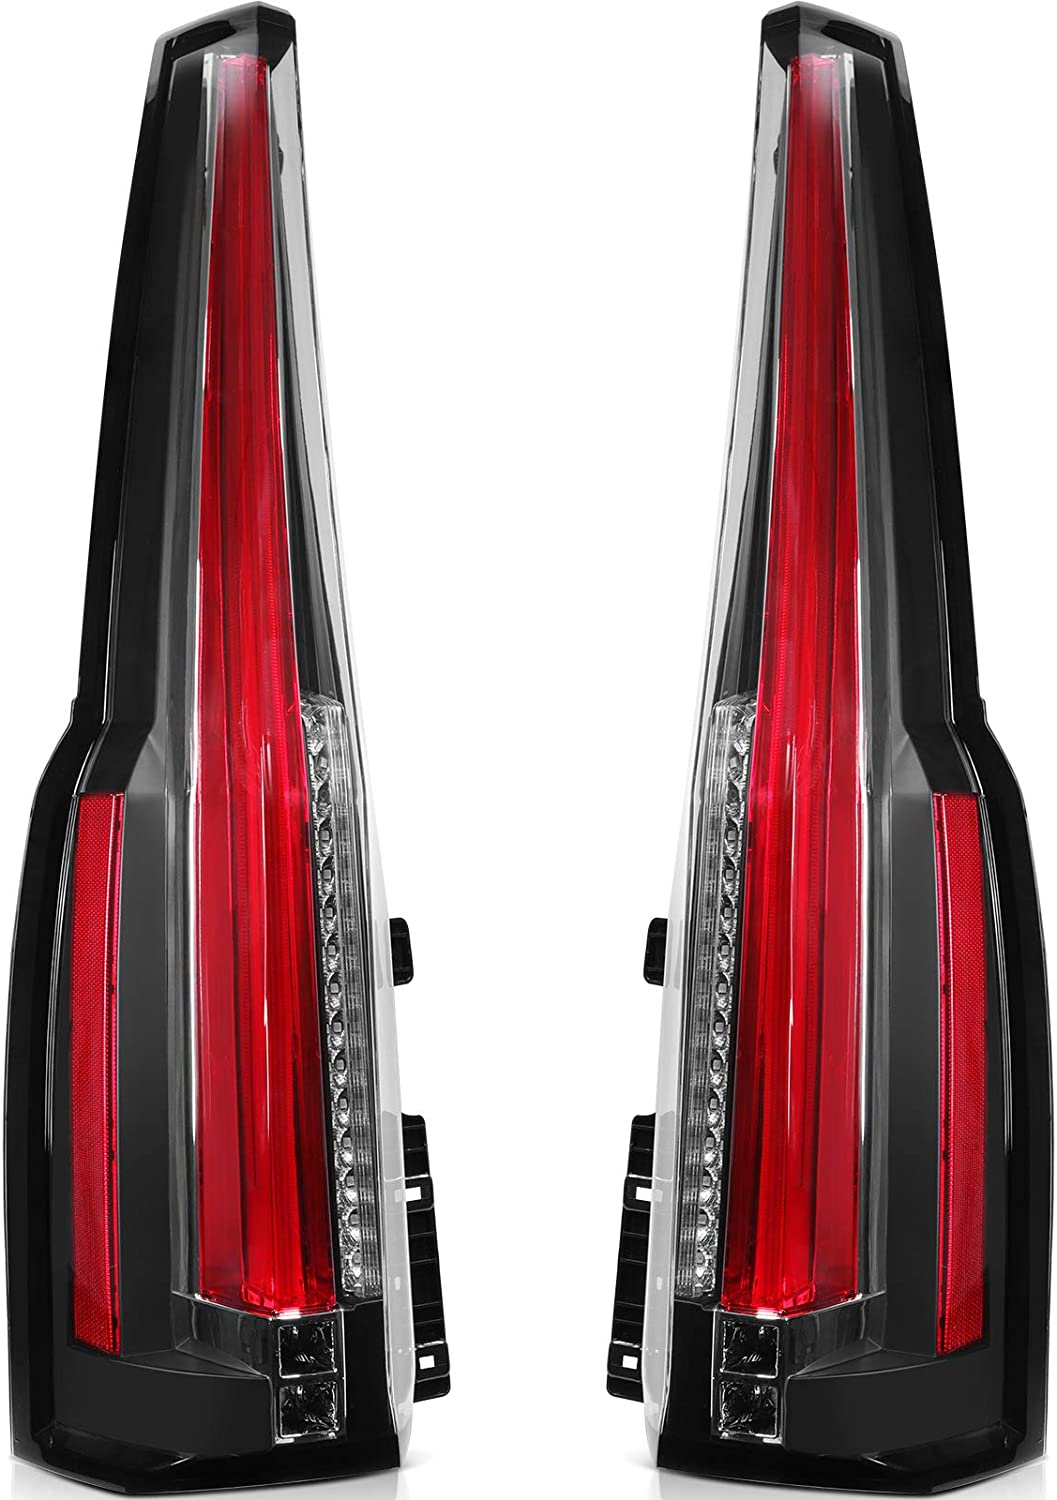 ECCPP Free shipping anywhere in the nation Tail Light Assembly kit Yukon 2015-2017 Financial sales sale GMC for L